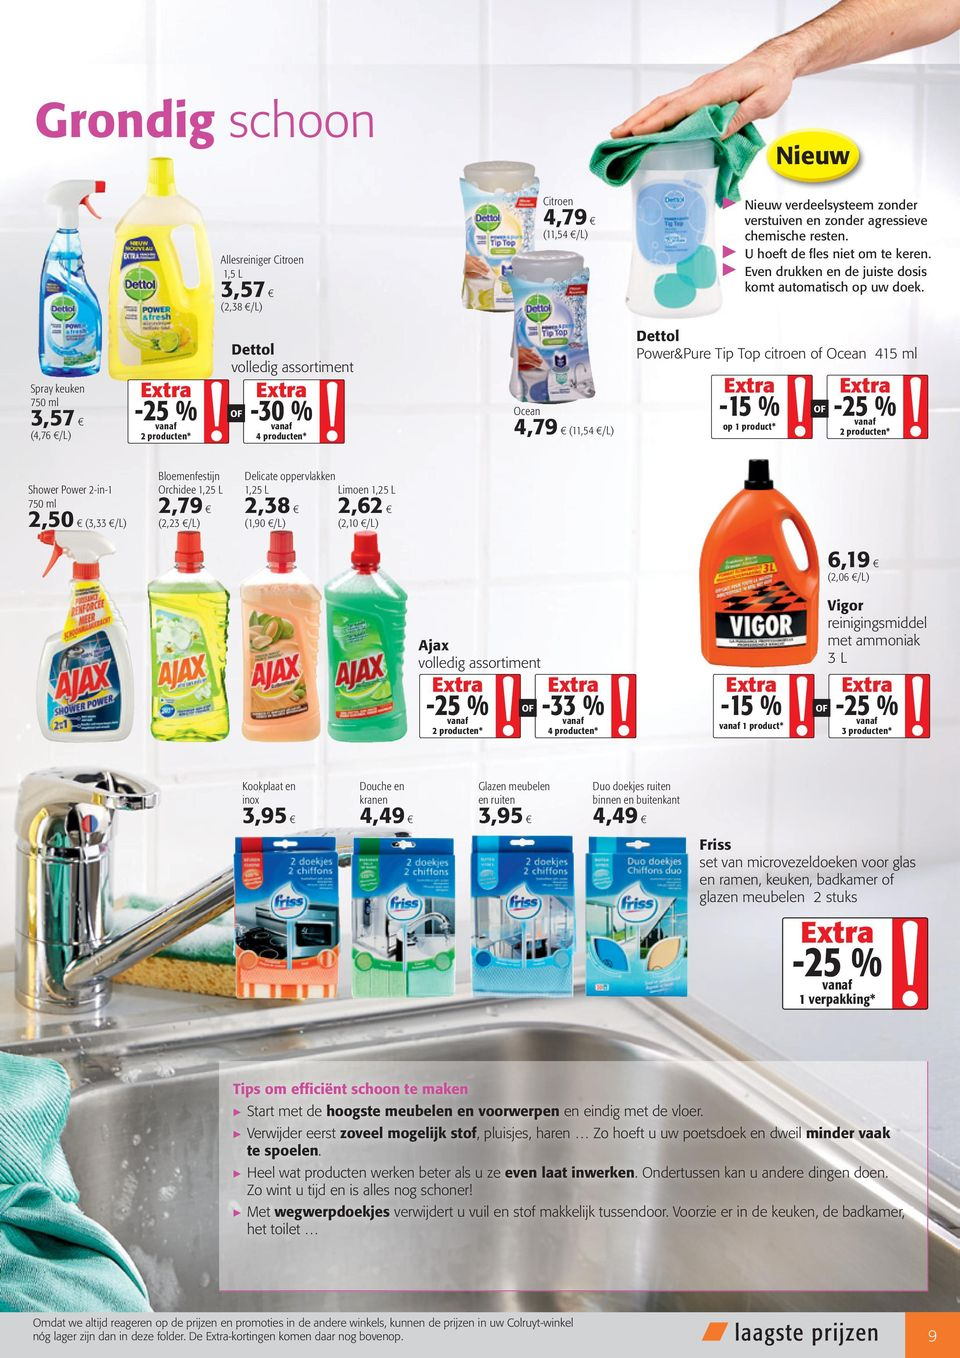 Spray keuken 3,57 (4,76 /L) OF Dettol -30 % Ocean 4,79 (11,54 /L) Dettol Power&Pure Tip Top citroen of Ocean 415 ml op 1 product * Shower Power 2-in-1 2,50 (3,33 /L) Bloemenfestijn Orchidee 1,25 L